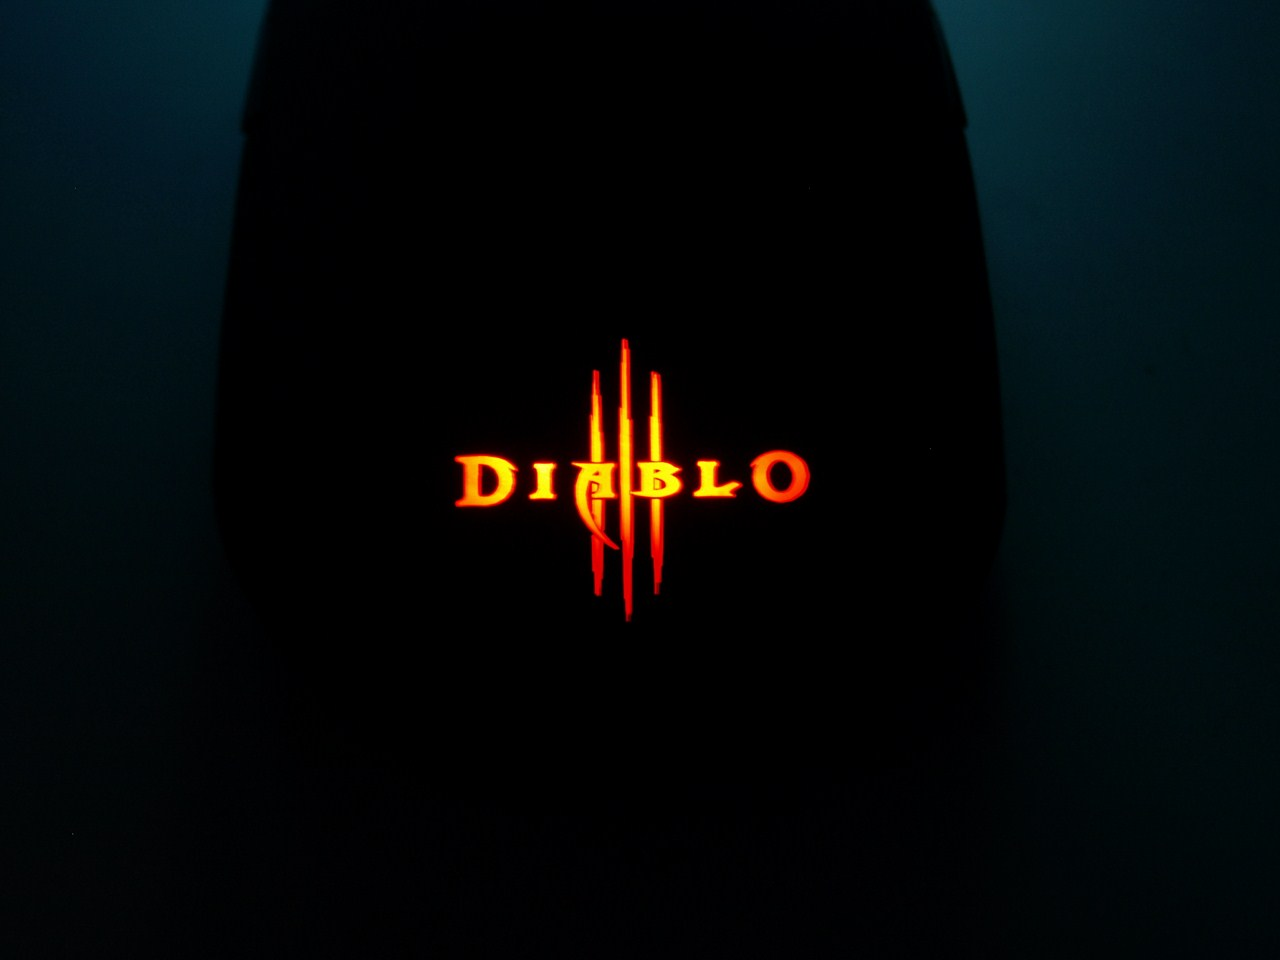 how to change your name in diablo 3